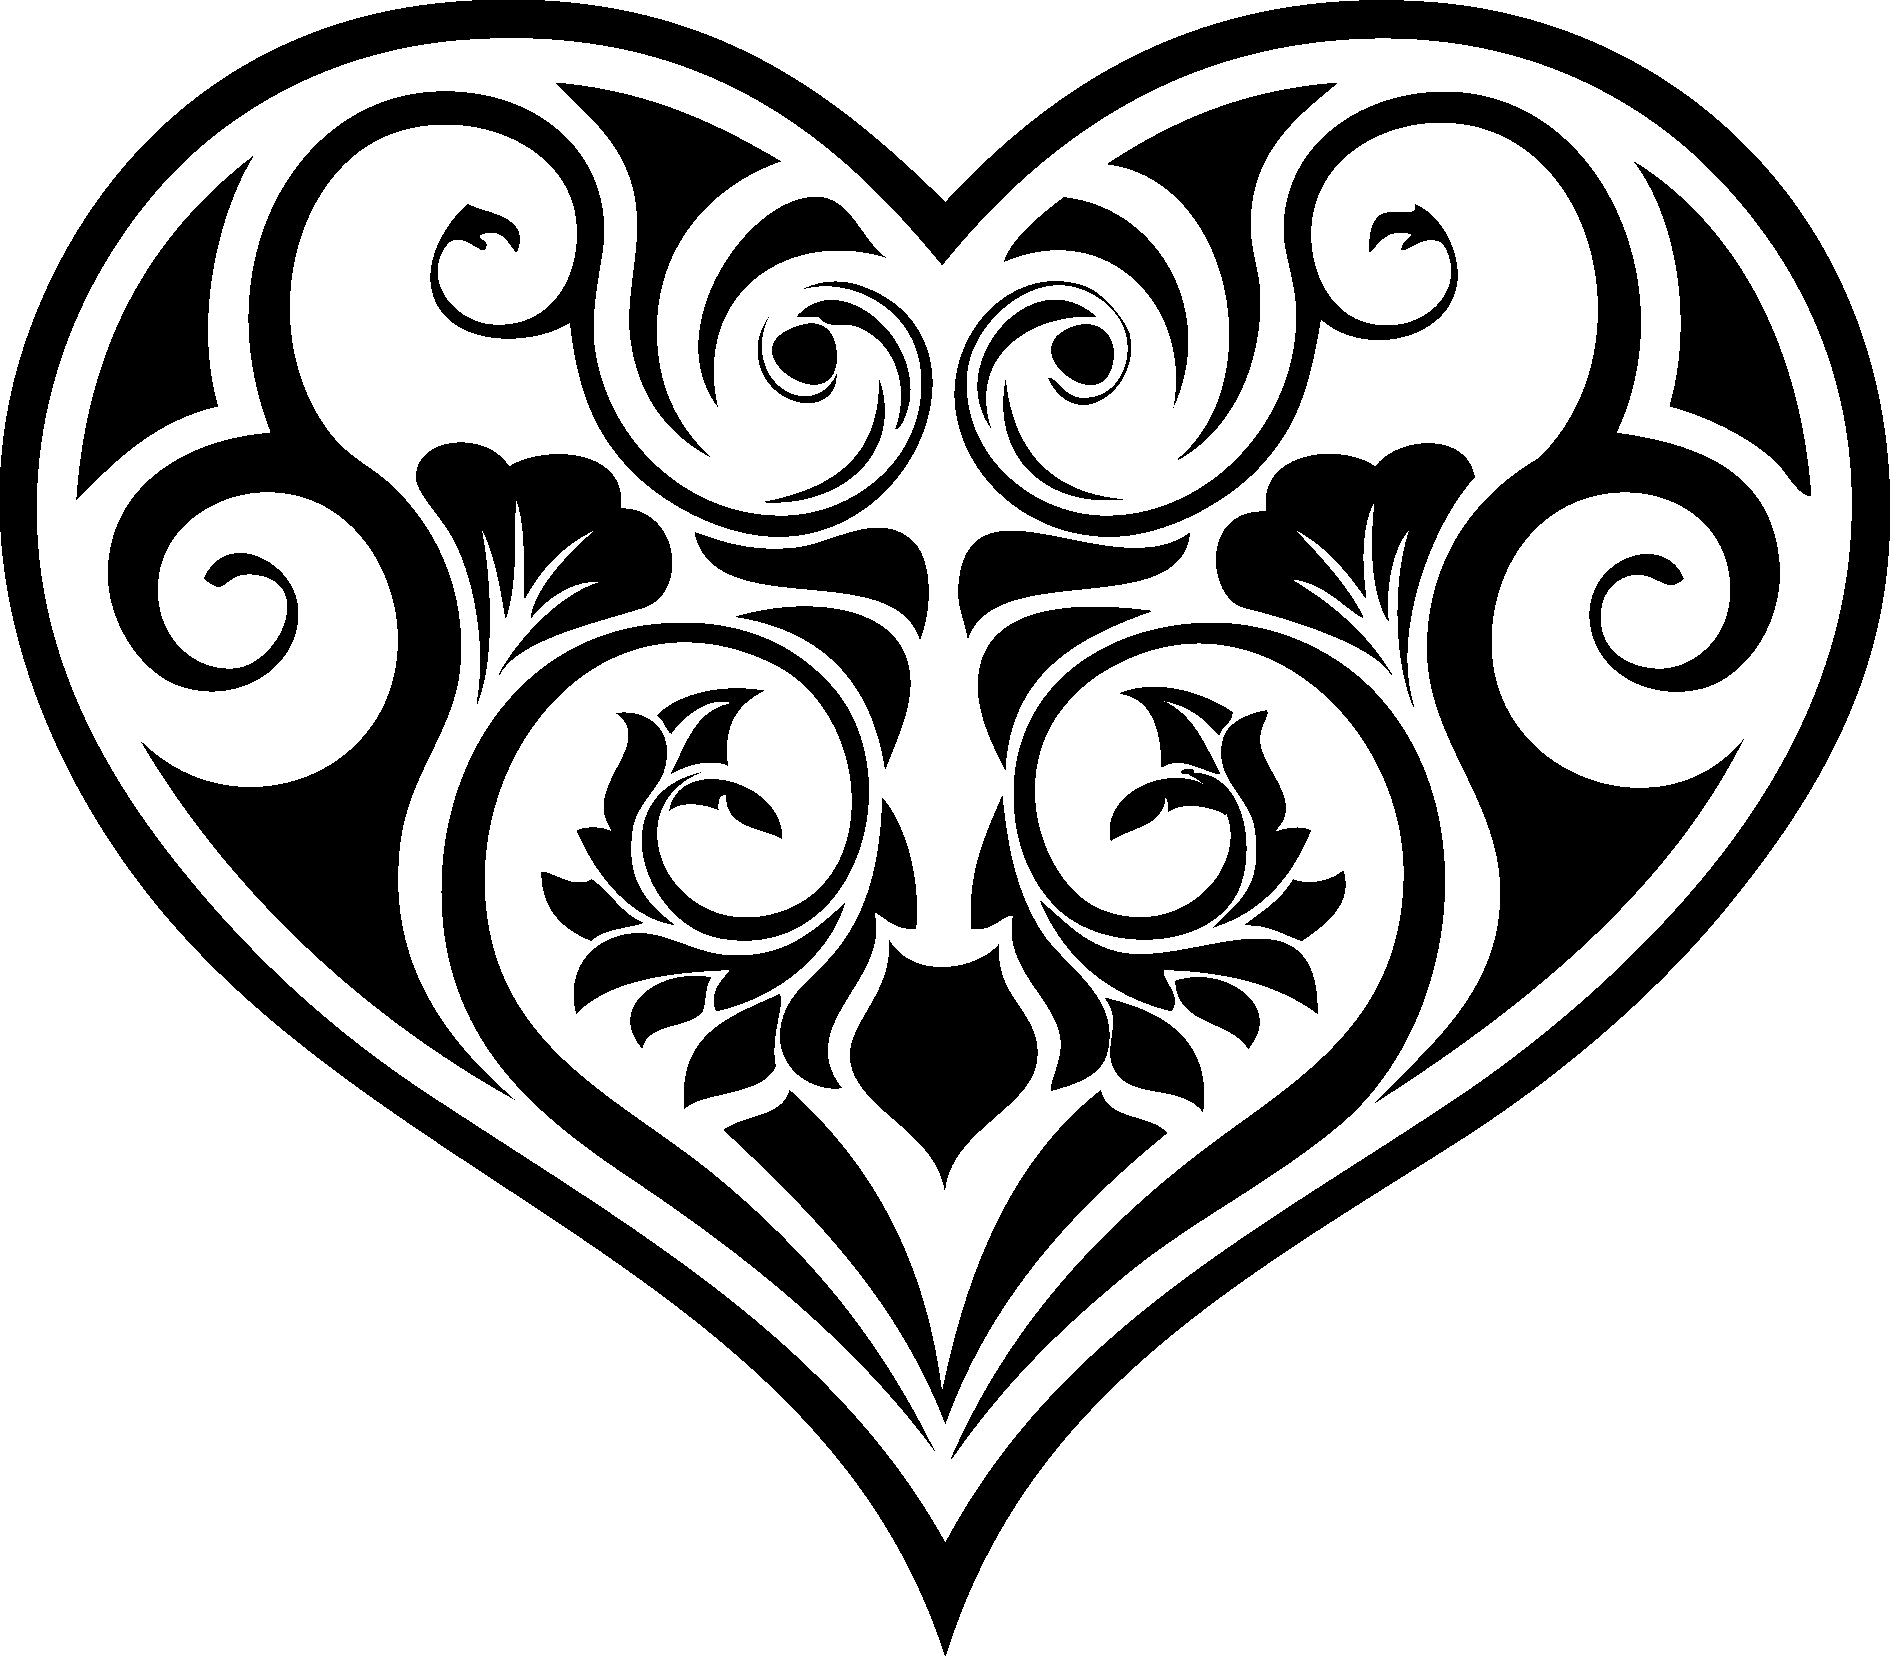 Heart 14 png